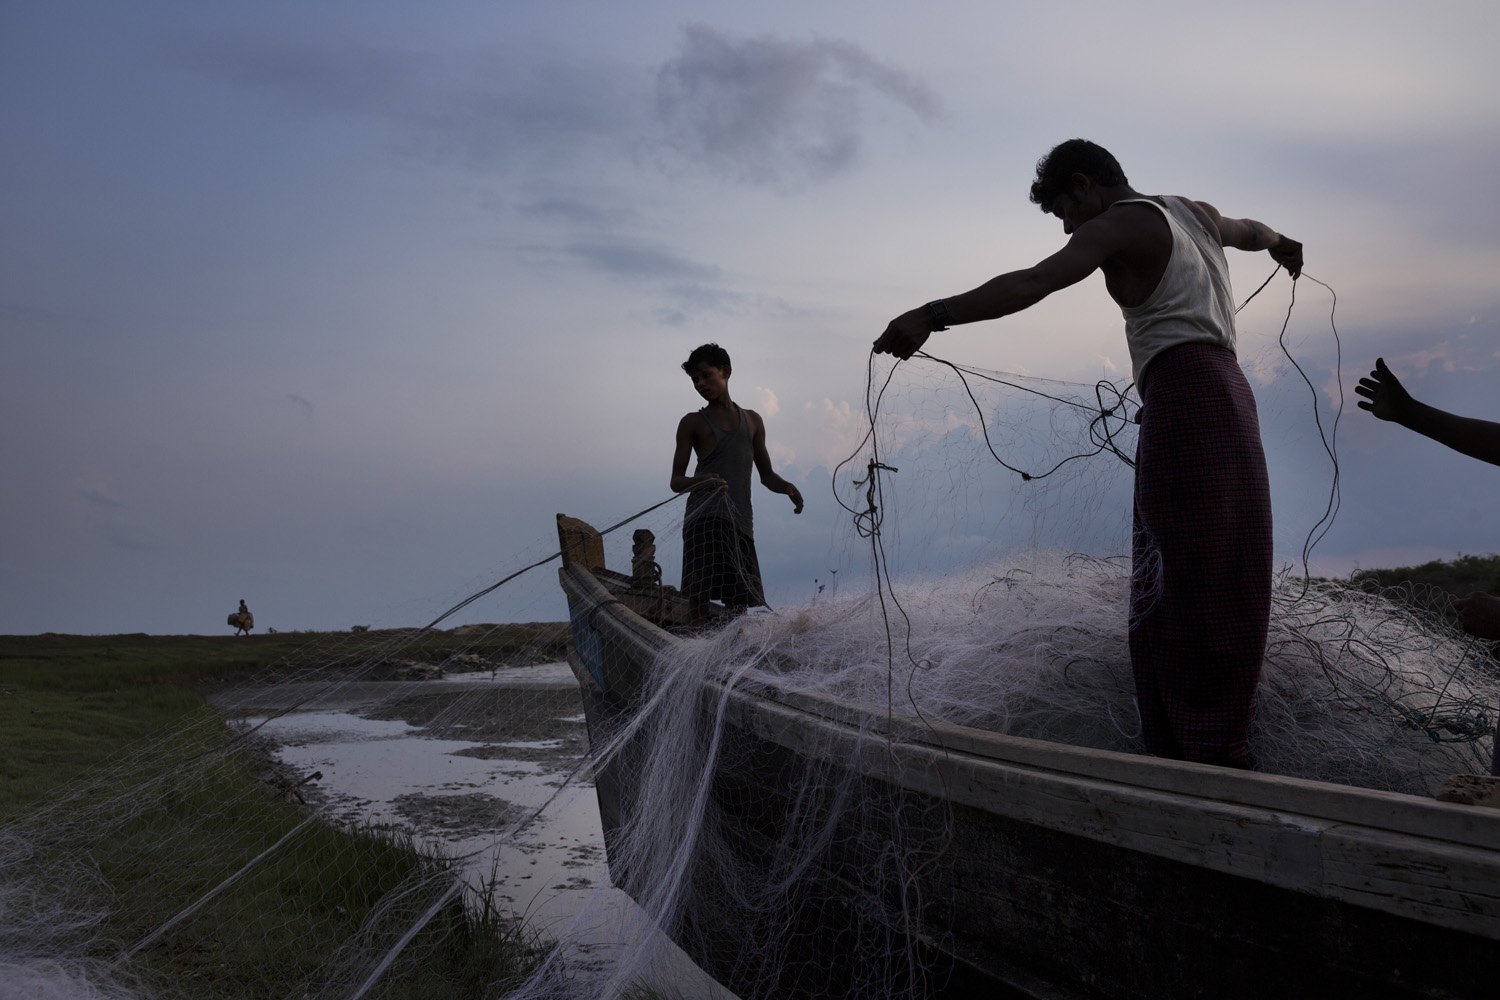 Fishermen tend their nets before going out into the Bay of Bengal to fish, one of the main sources of food and livelihood for the Rohingya.